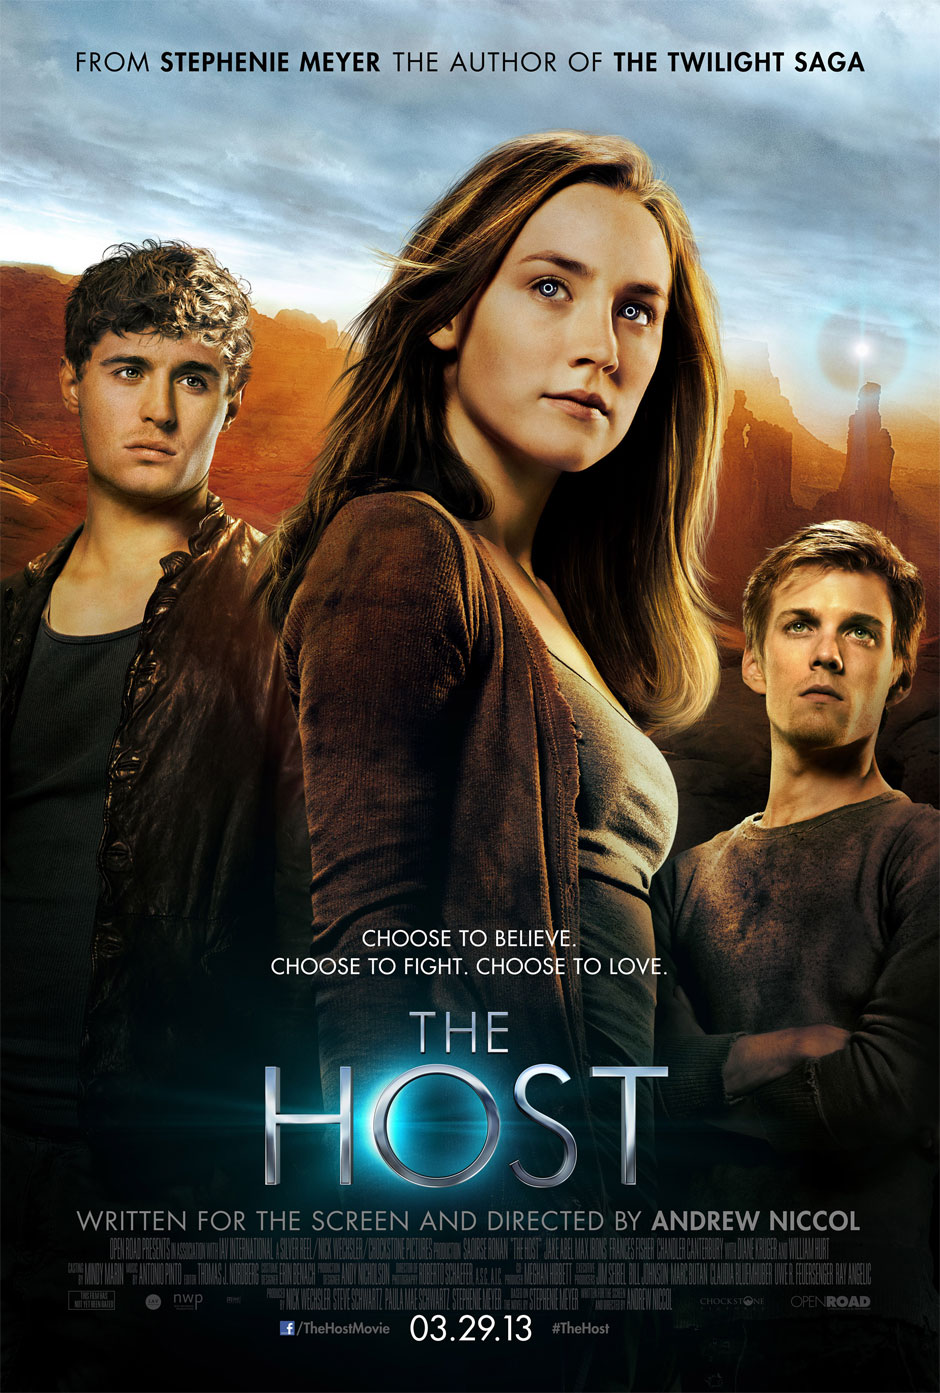 The Host [2013] [HDrip] [Sub Español] [1 Link]